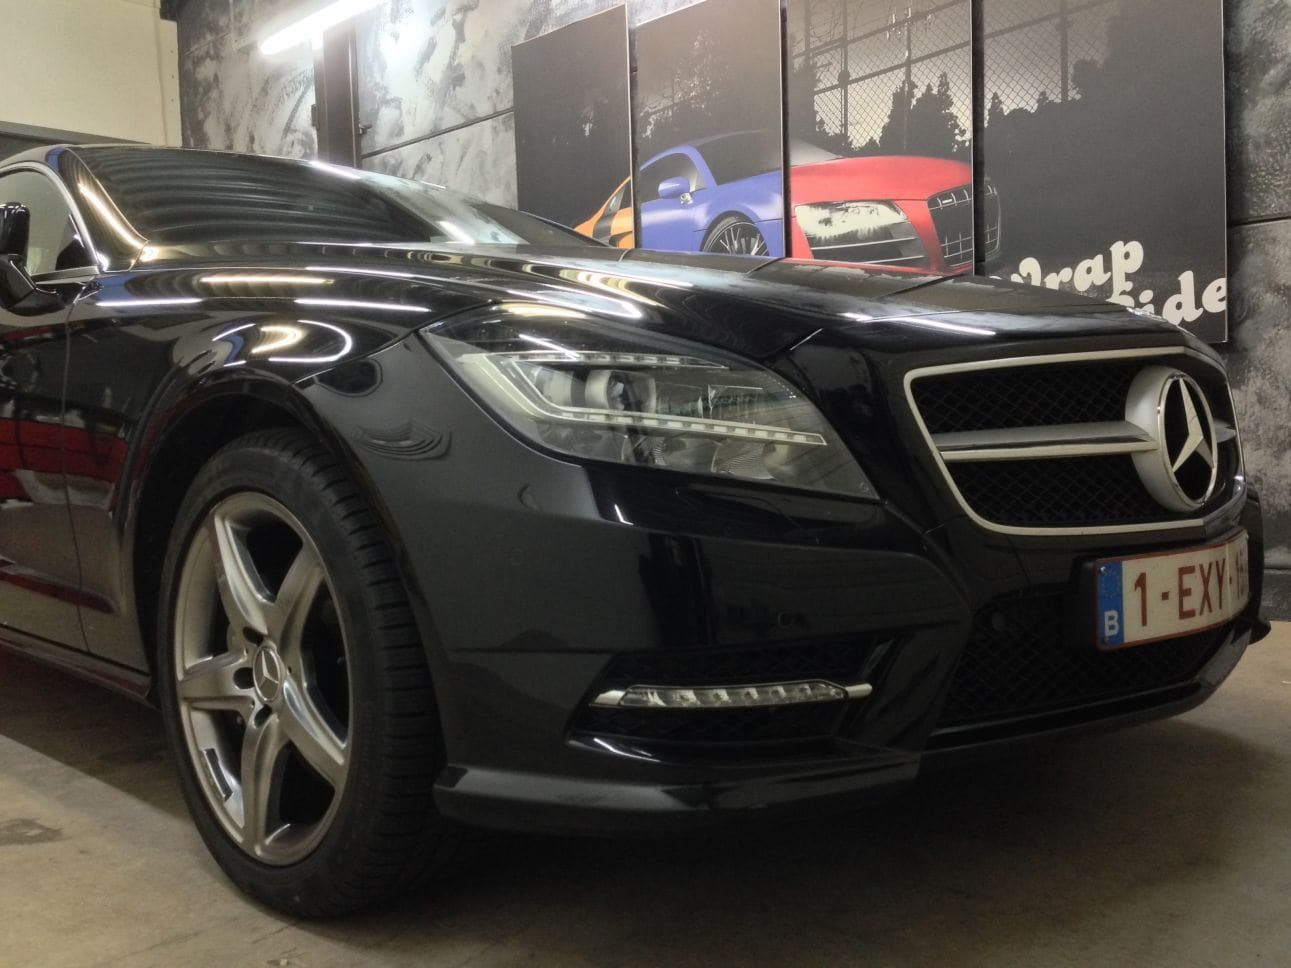 Mercedes CLS met White Satin Pearl Wrap, Carwrapping door Wrapmyride.nu Foto-nr:6173, ©2021